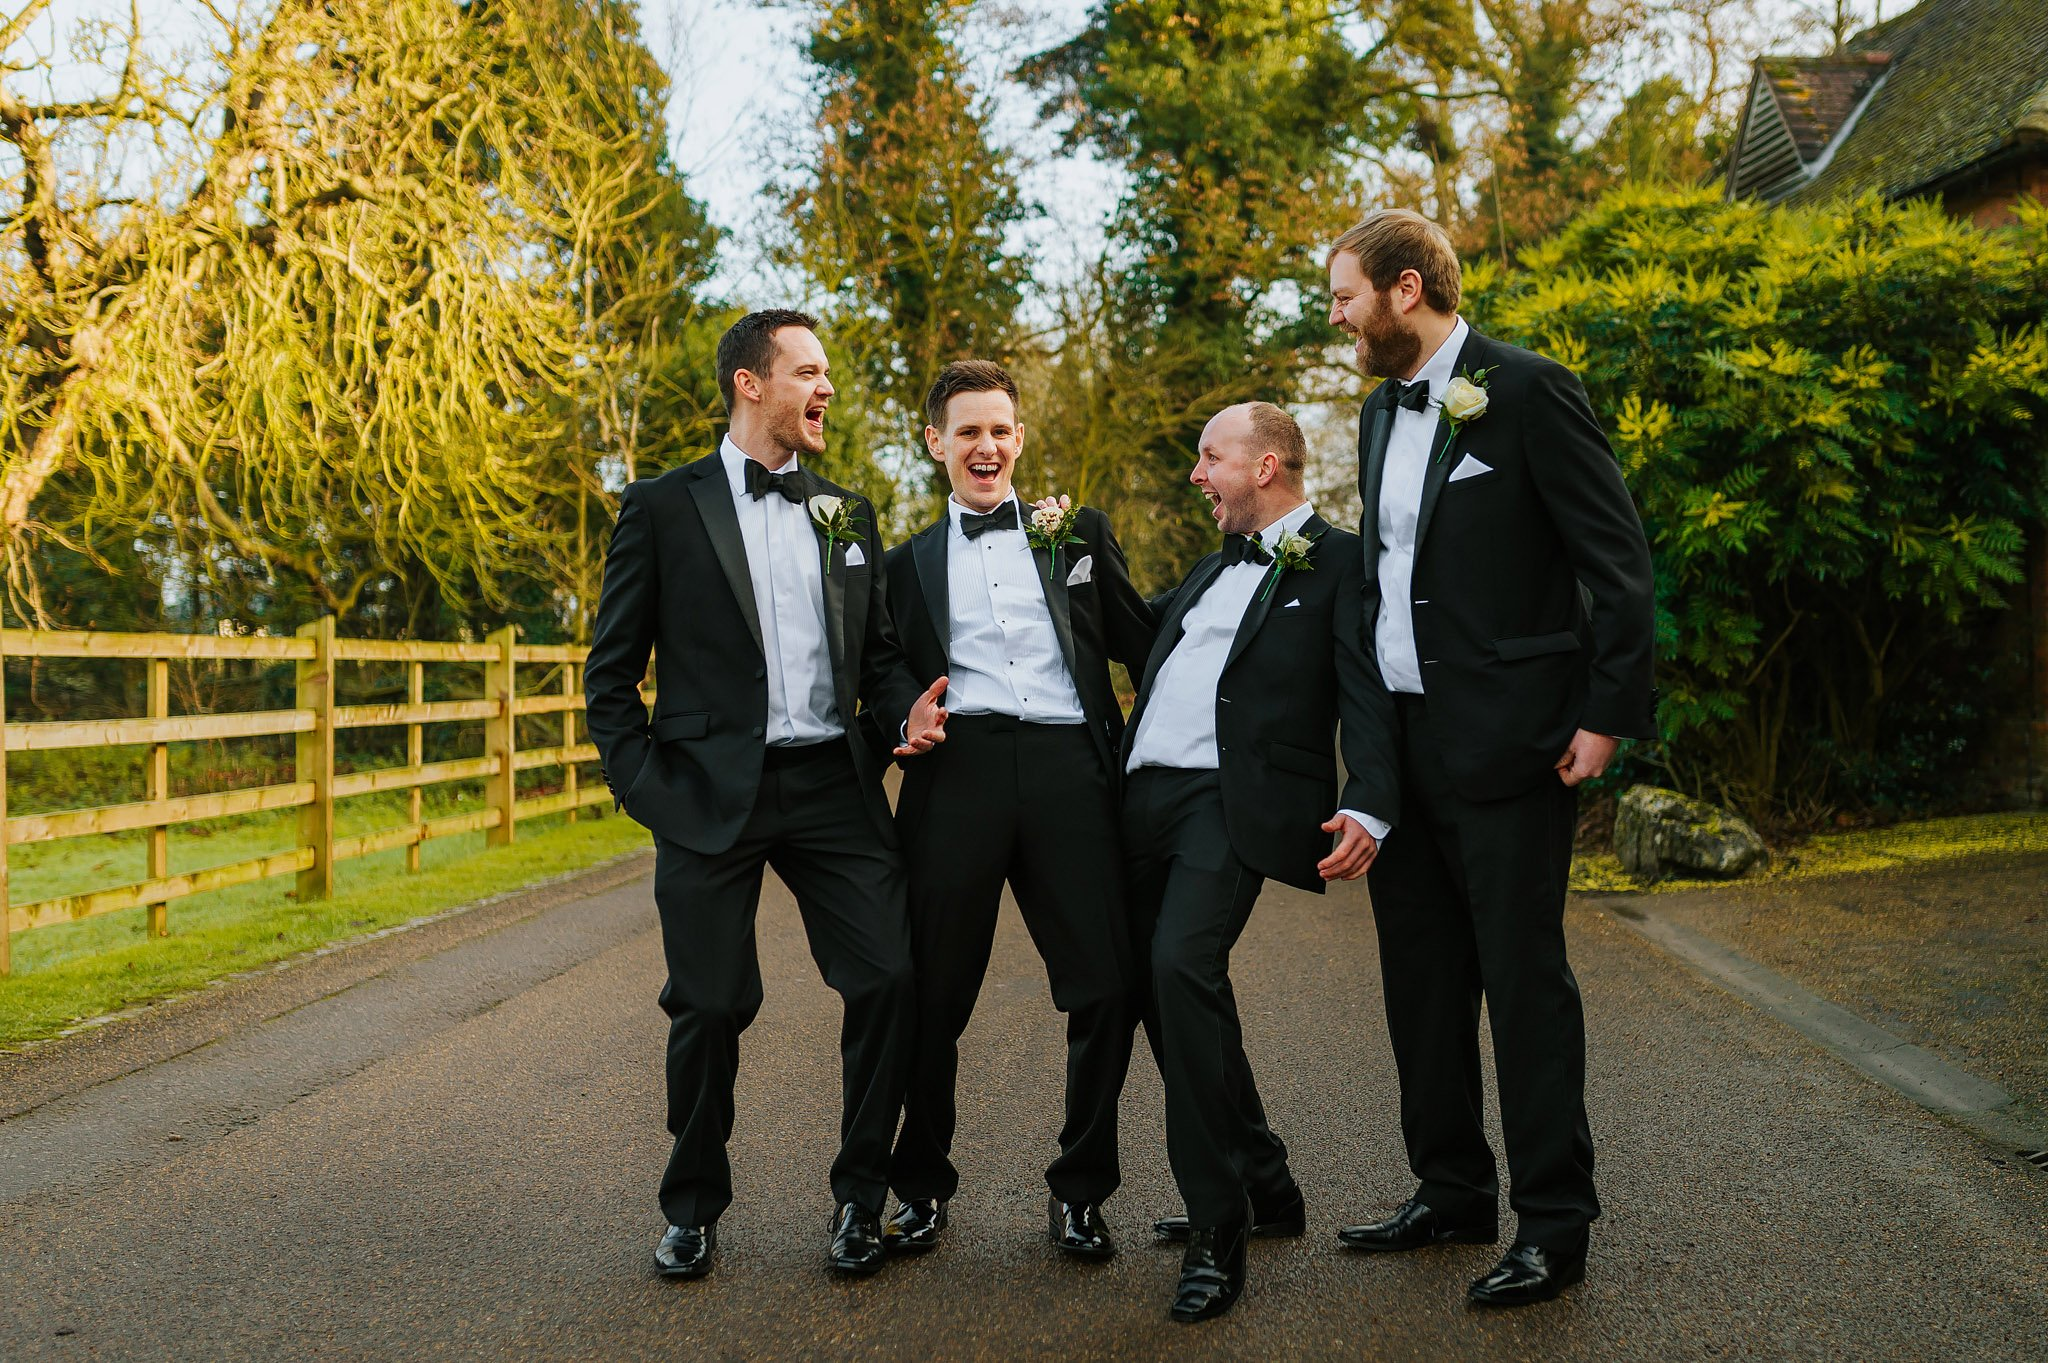 coombe abbey wedding coventry 38 - Coombe Abbey wedding in Coventry, Warwickshire - Sam + Matt